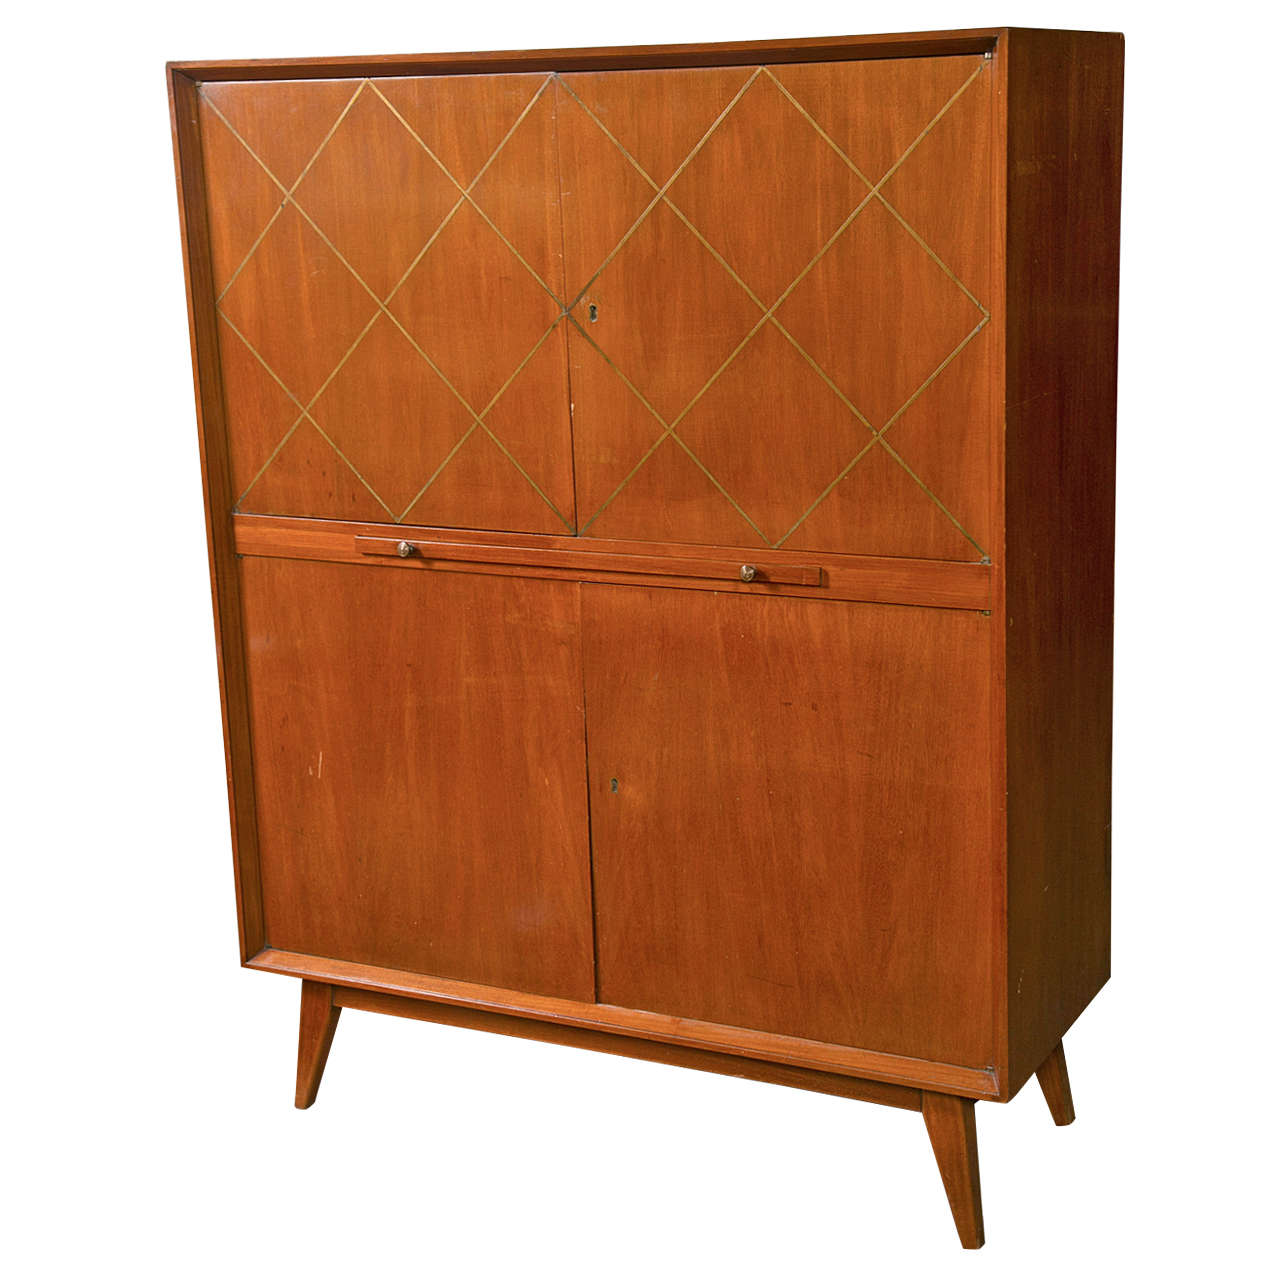 Danish modern mid century bar cabinet at 1stdibs - Contemporary bar cabinet on a small budget ...